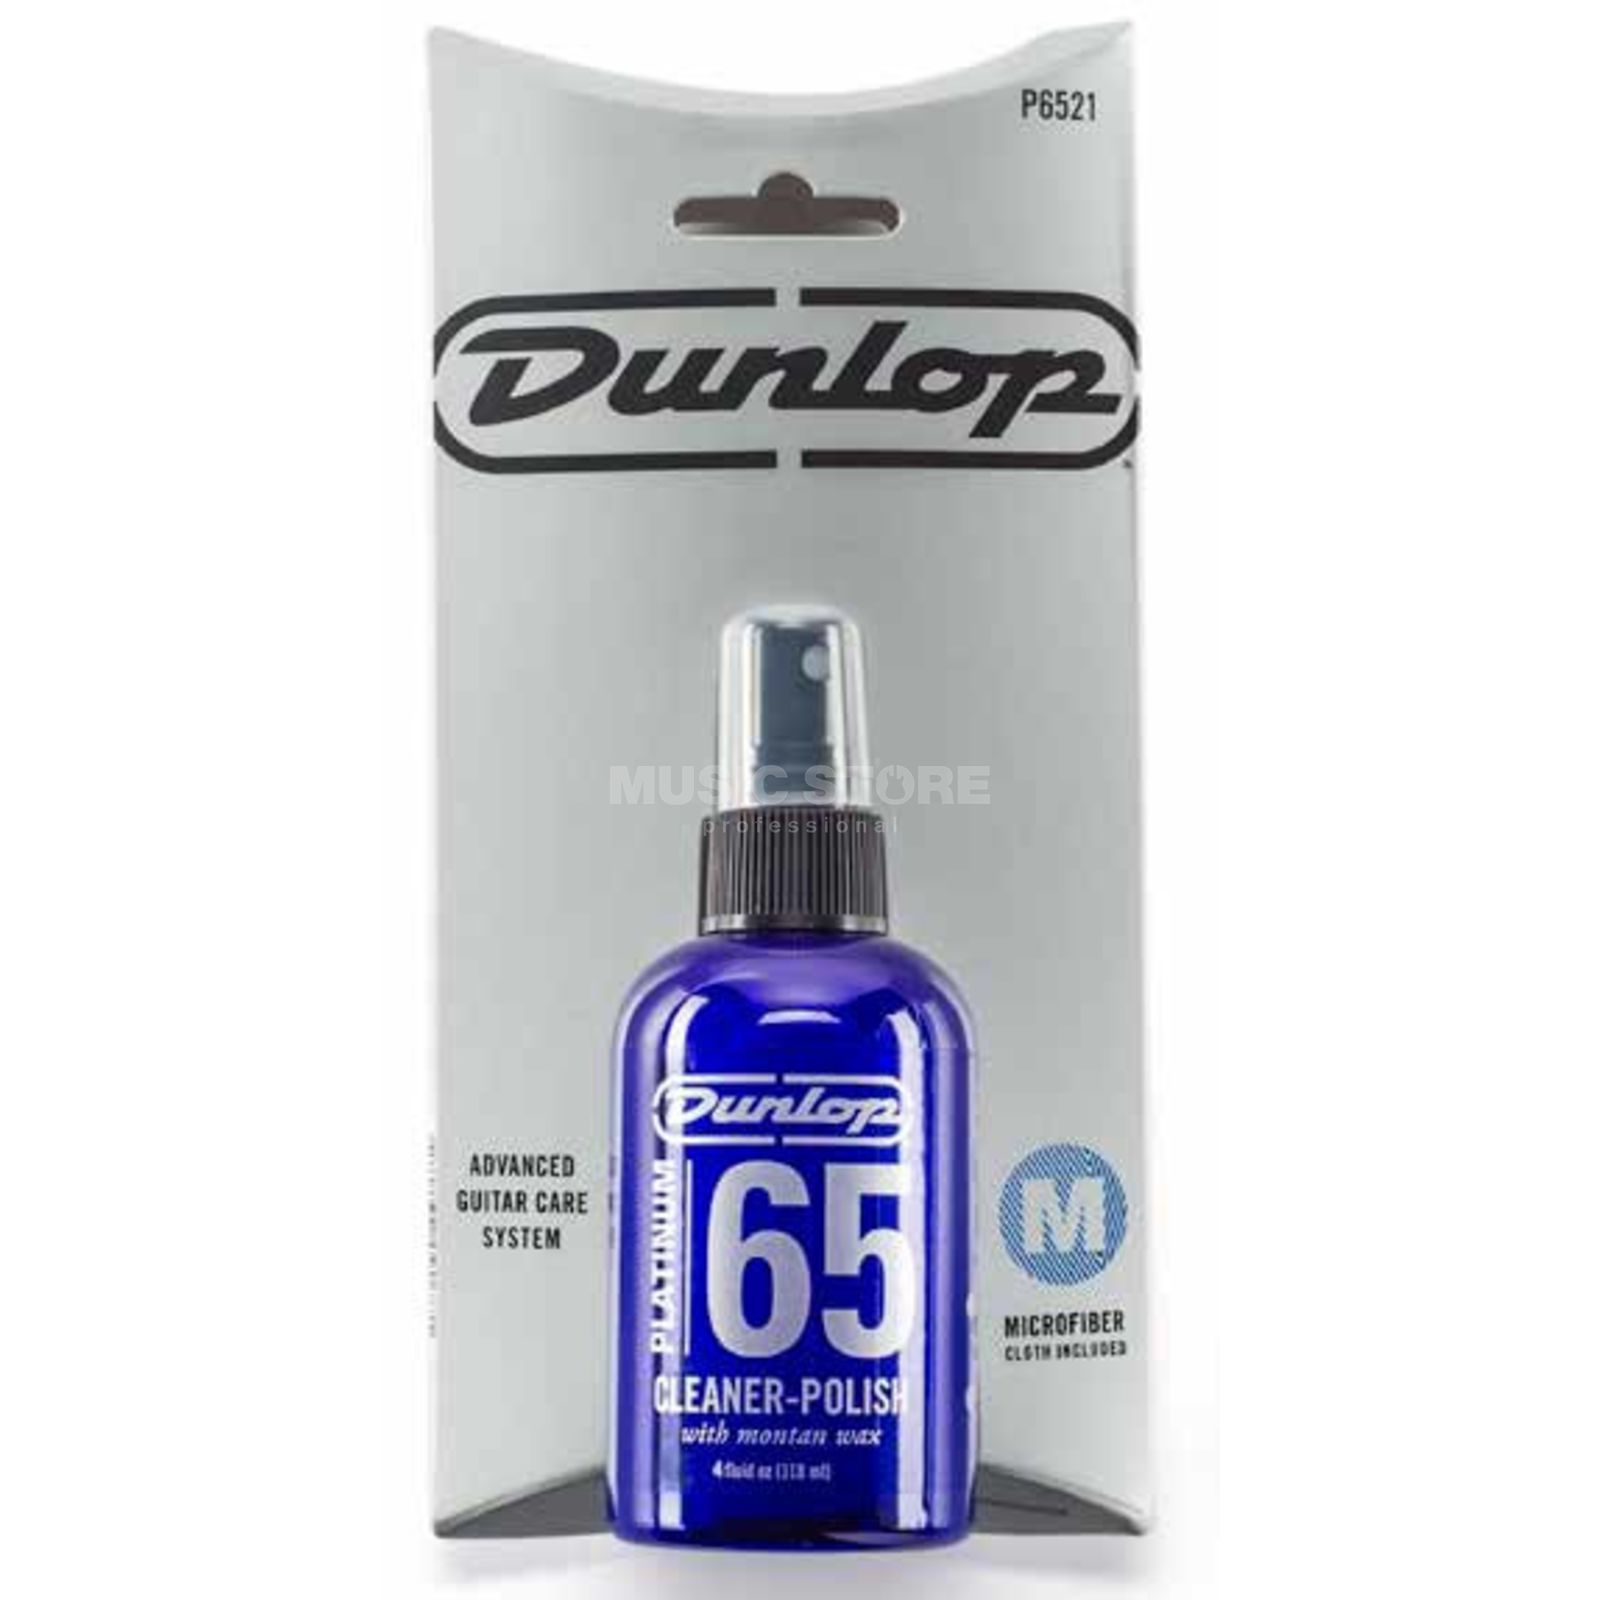 Dunlop Platinum 65 Cleaner-Polish mit Tuch, P65 21 Product Image